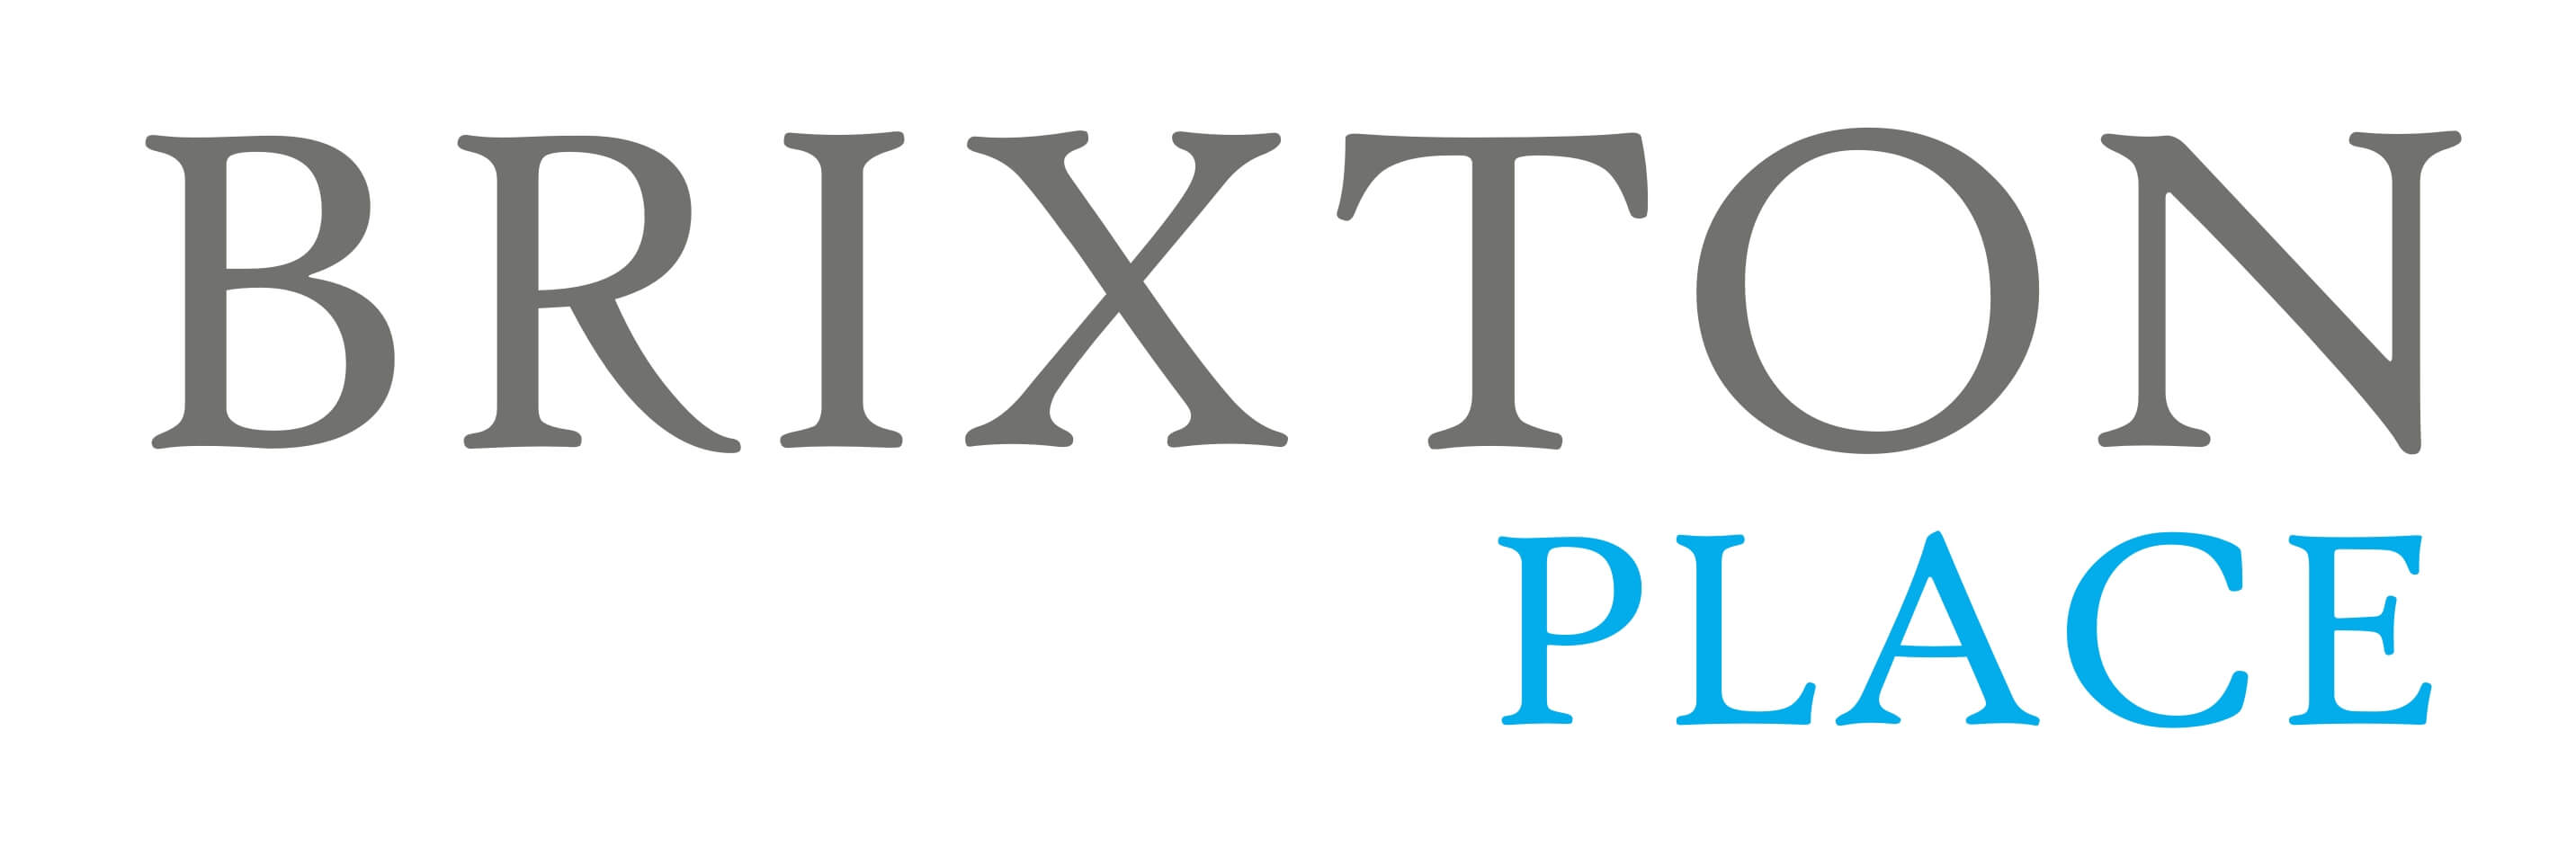 brixton place final logo